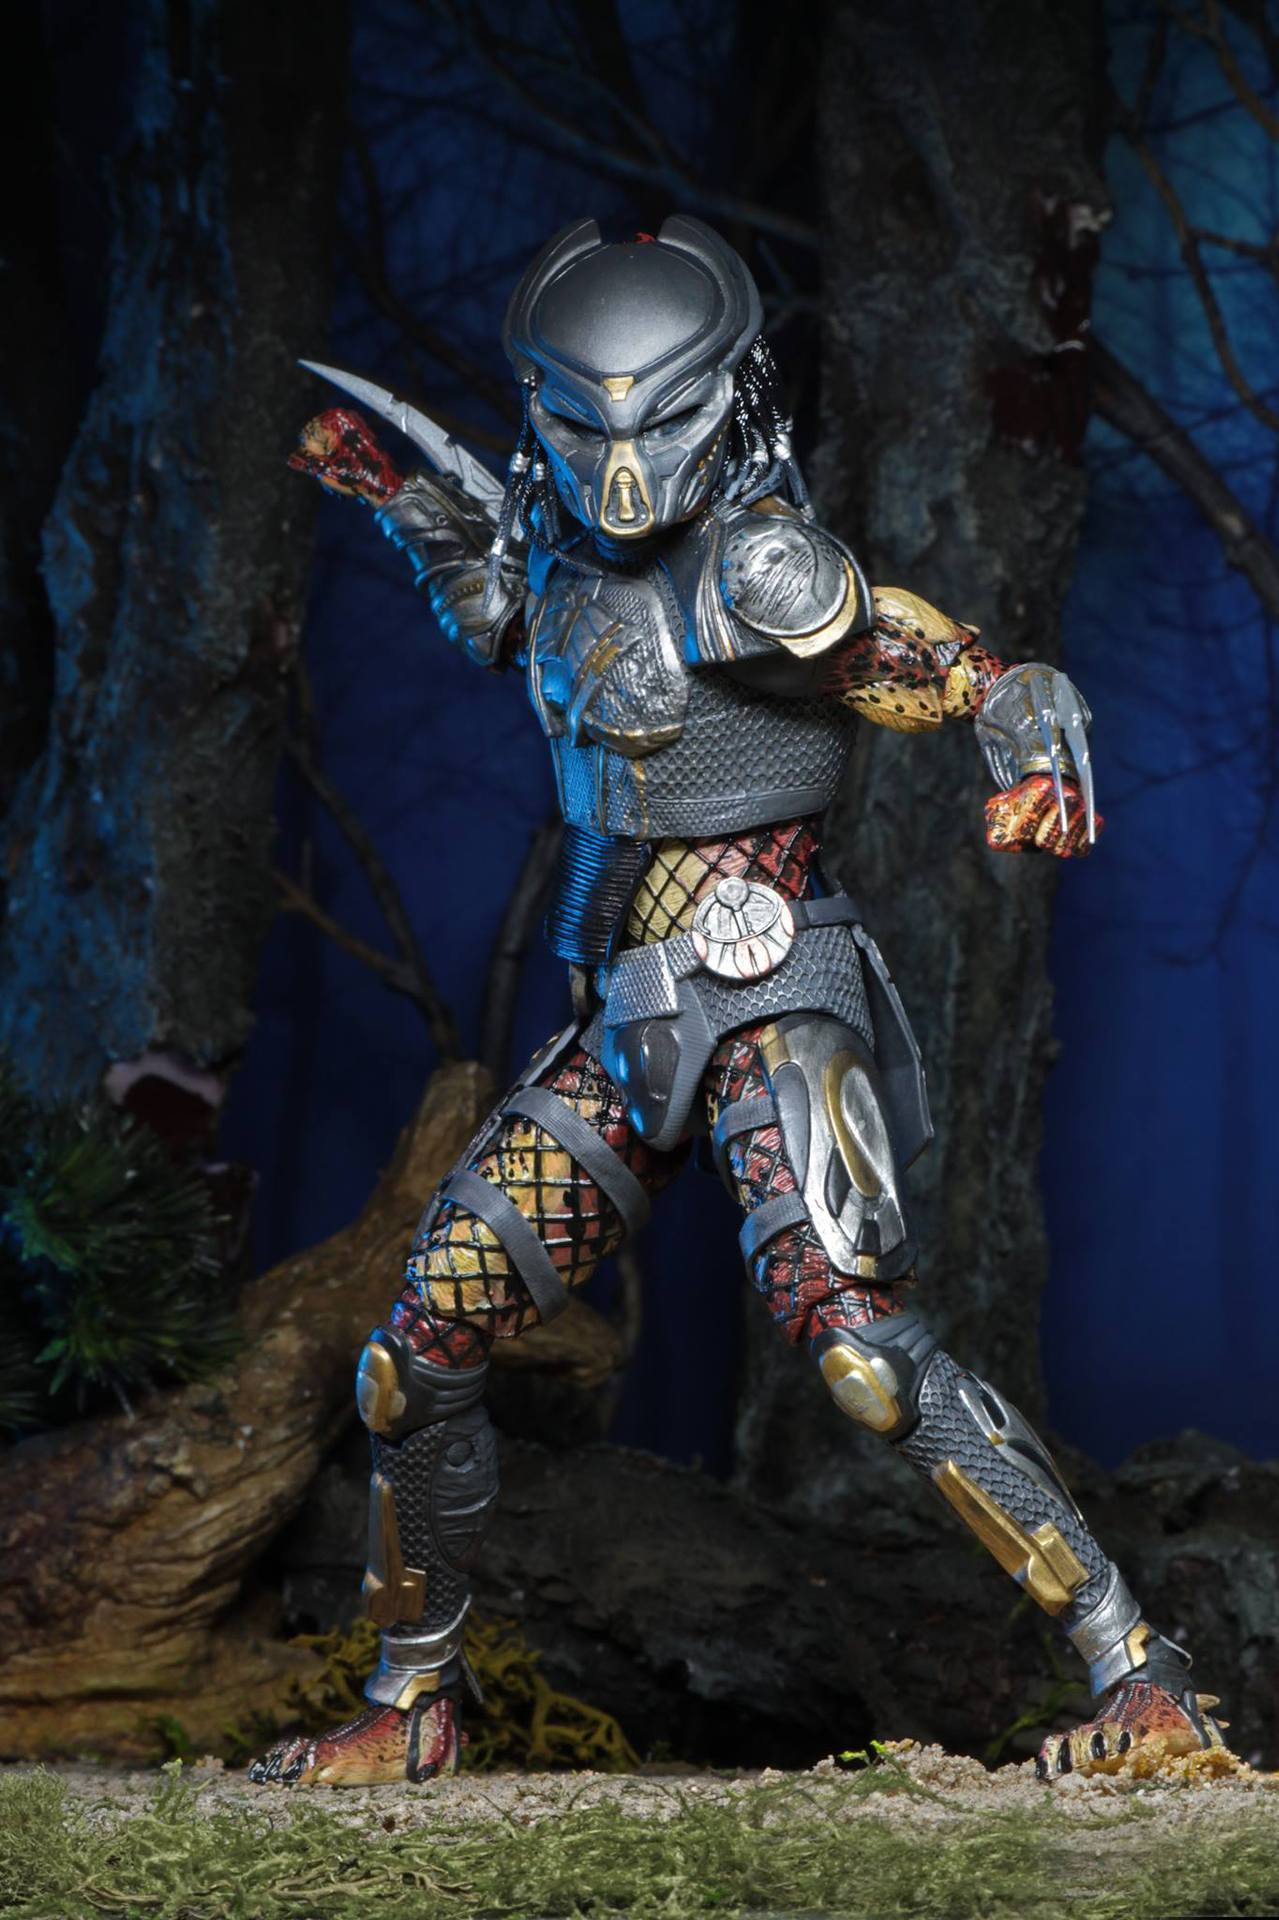 2pcs Head 2018 New NECA Aliens vs Predator Ultimate Fugitive Predator Unmasked Scarface Action Figure Toy Doll (8)